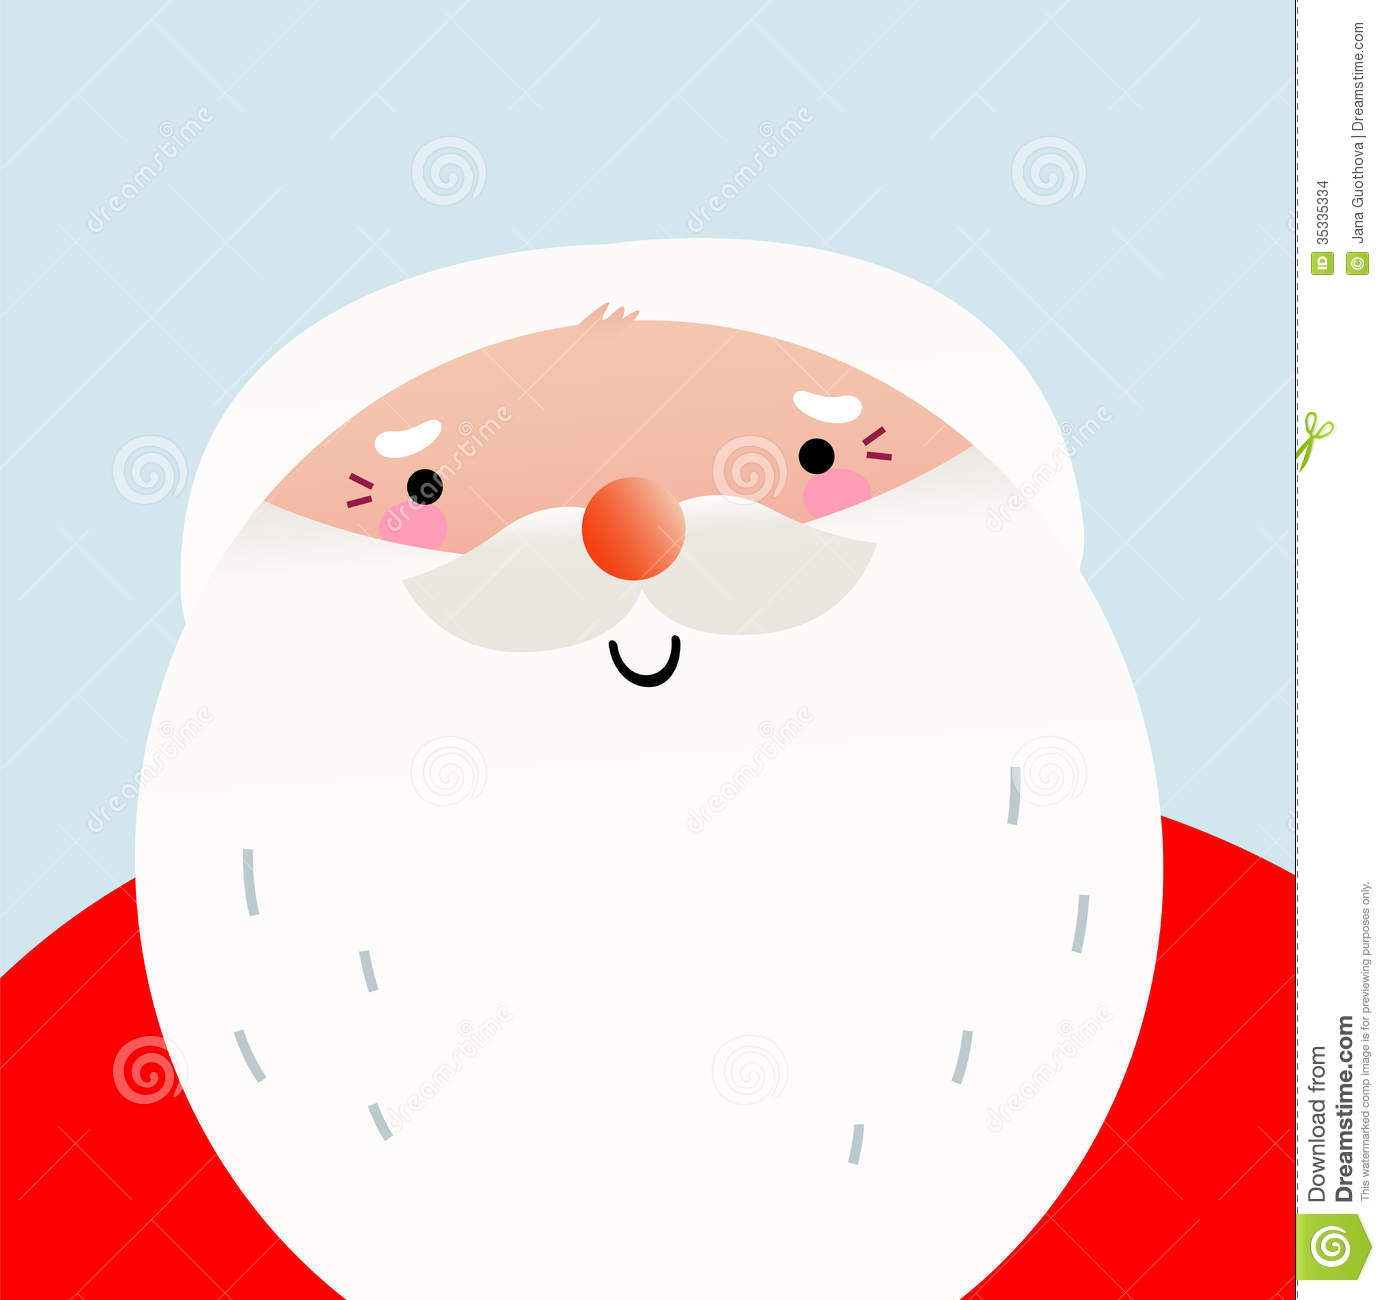 Cute Cartoon Smiling Santa Face Stock Vector ...